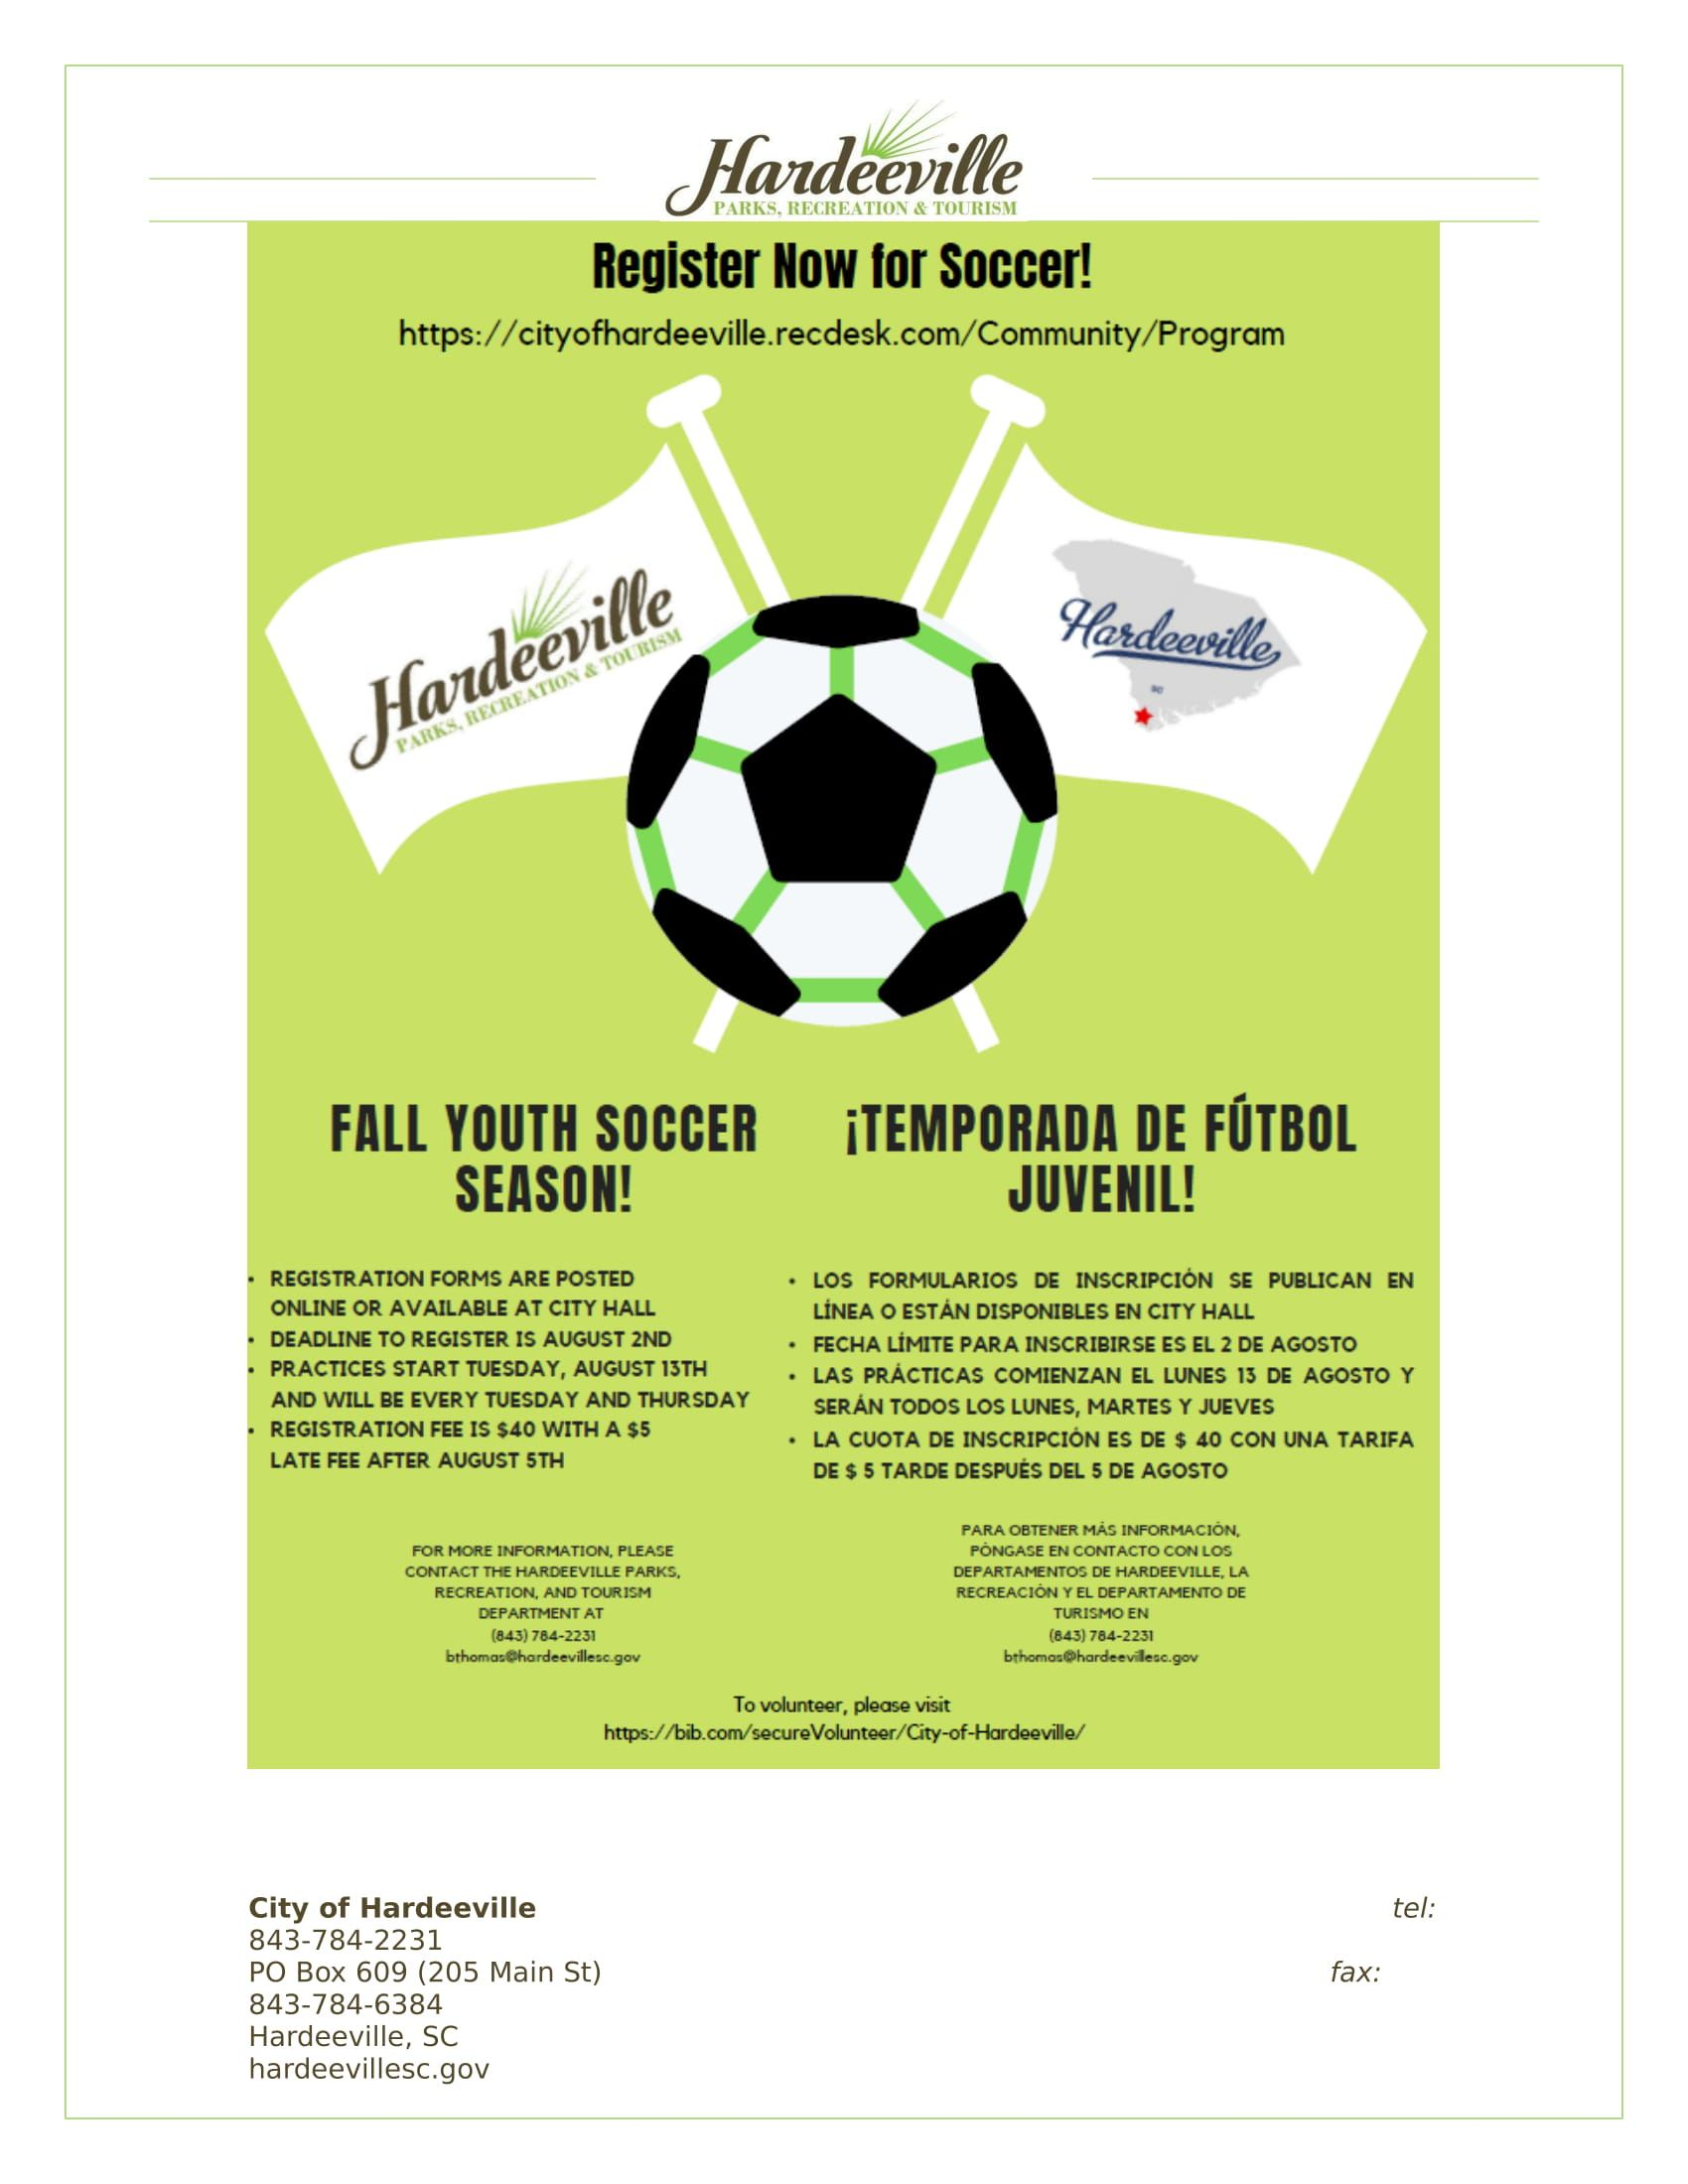 PSA Fall Youth Soccer